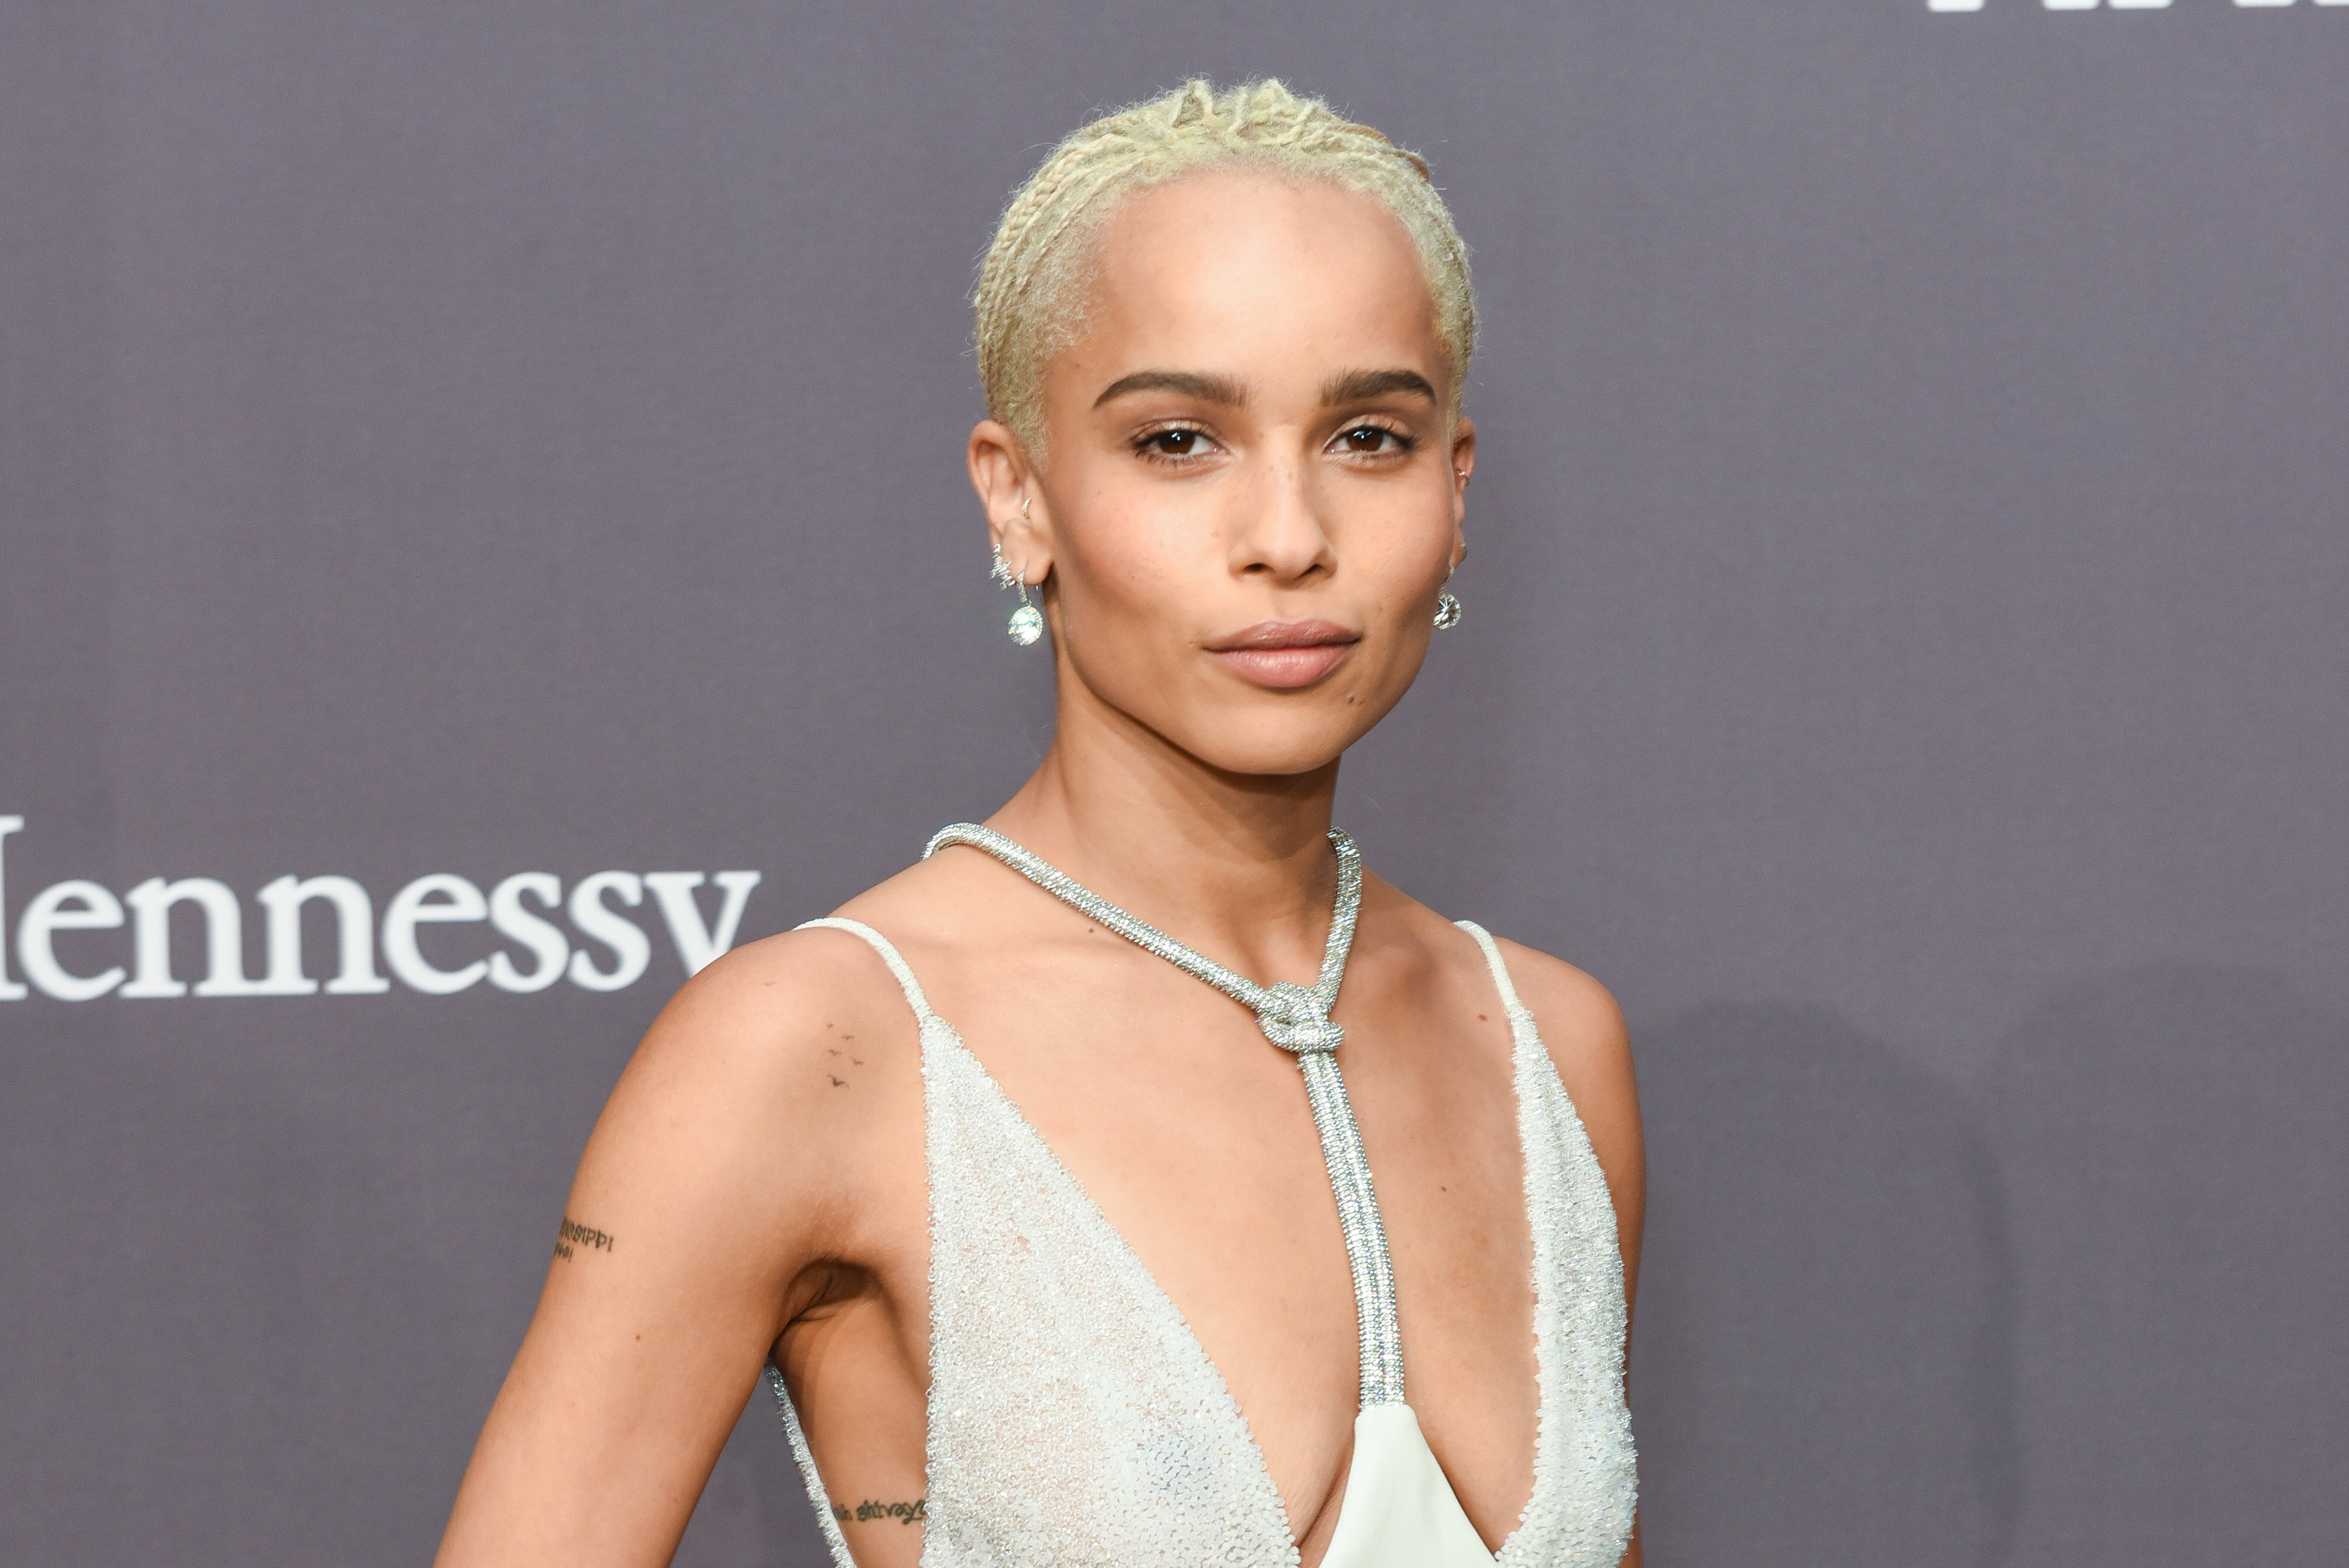 Zoë Kravitz talks about the realities of being the only person of color on set